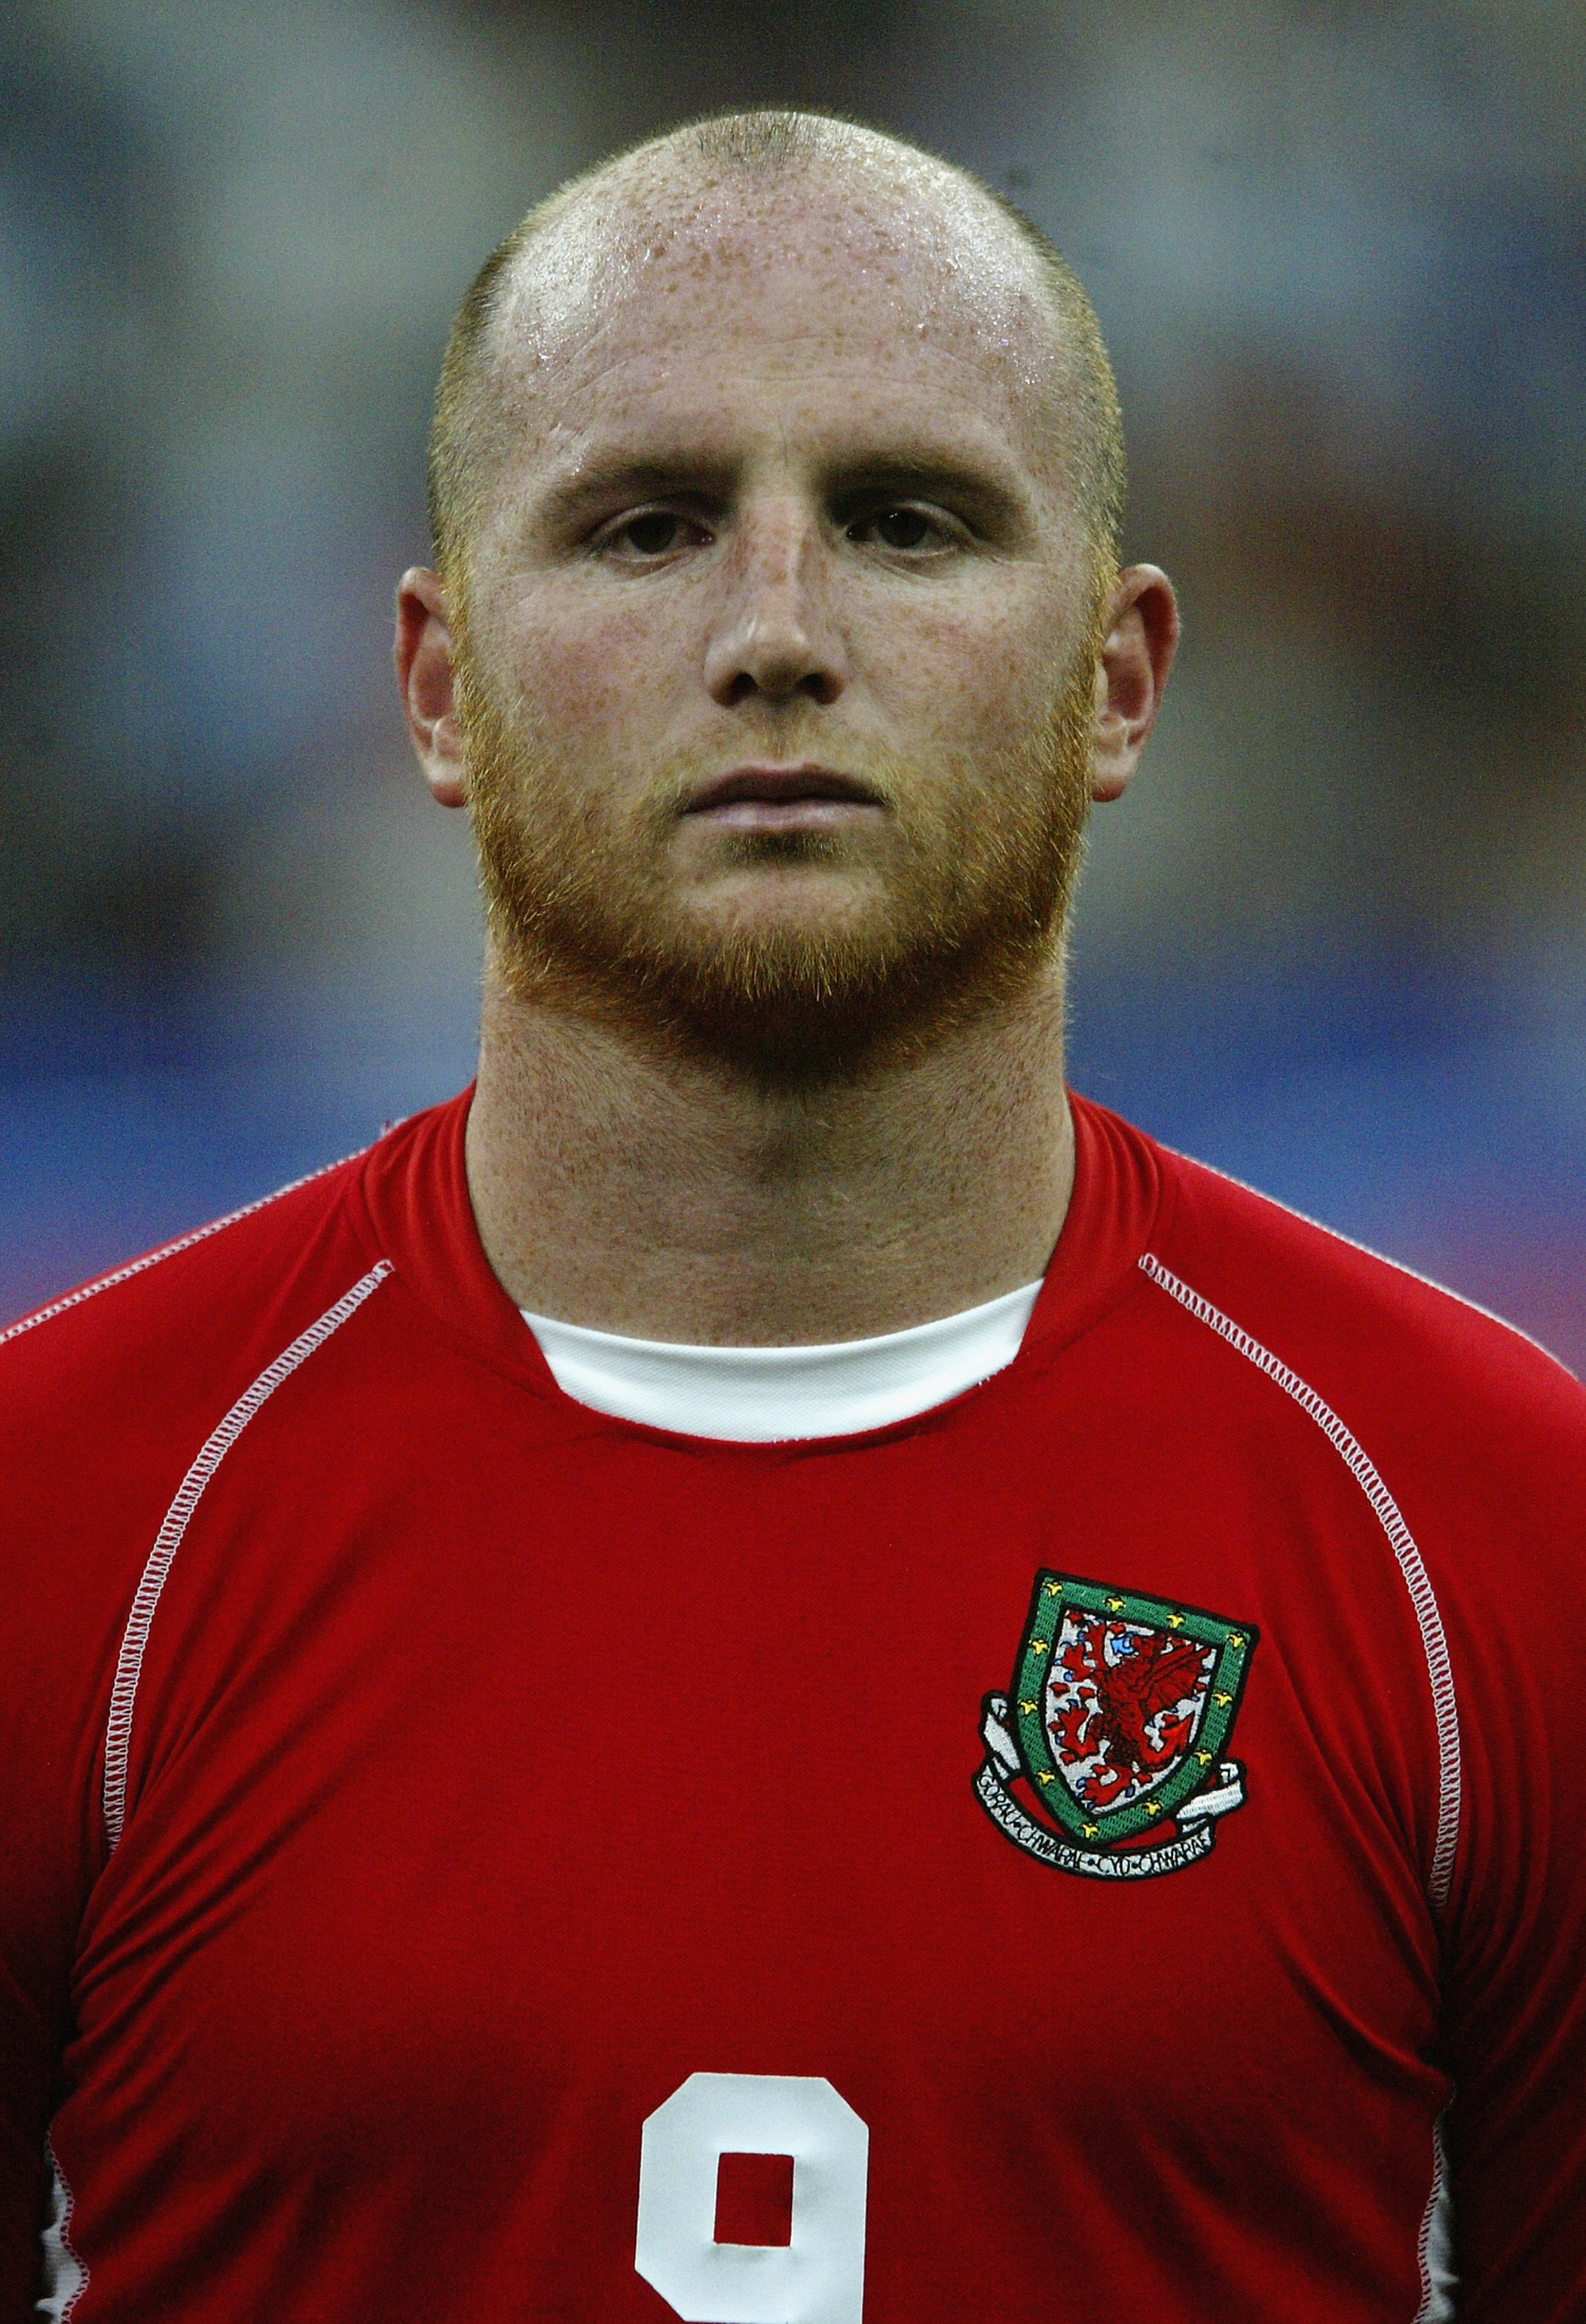 MILAN - SEPTEMBER 6:  John Hartson of Wales during the team line-up during the Euro 2004 Qualifying Group 9 match between Italy and Wales on September 6, 2003 at the San Siro in Milan, Italy.  Italy won the match 4-0.  (Photo by Mark Thompson/Getty Images